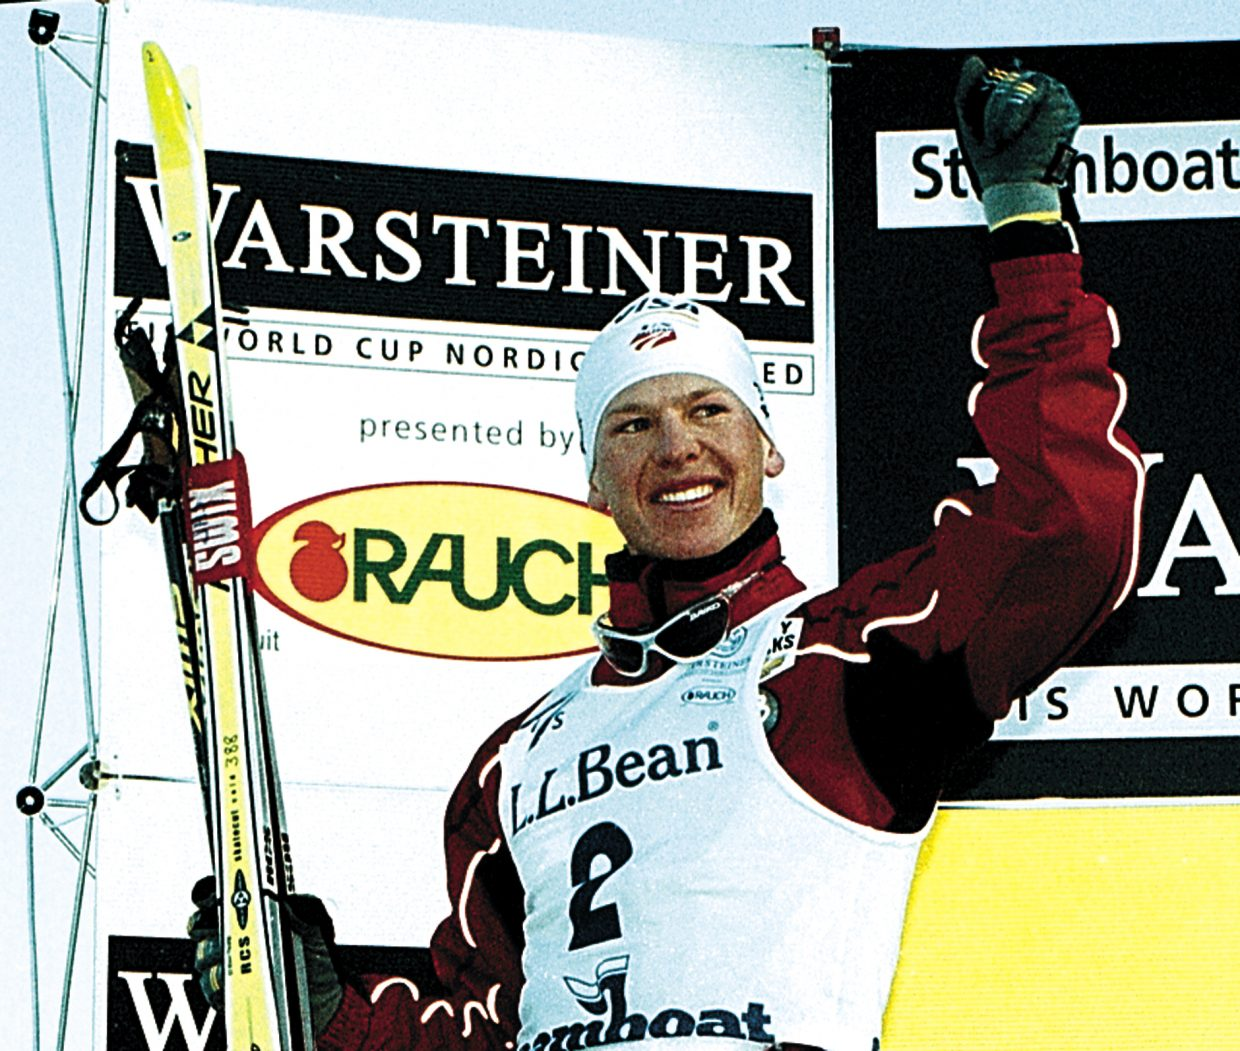 Nordic combined skier Todd Lodwick